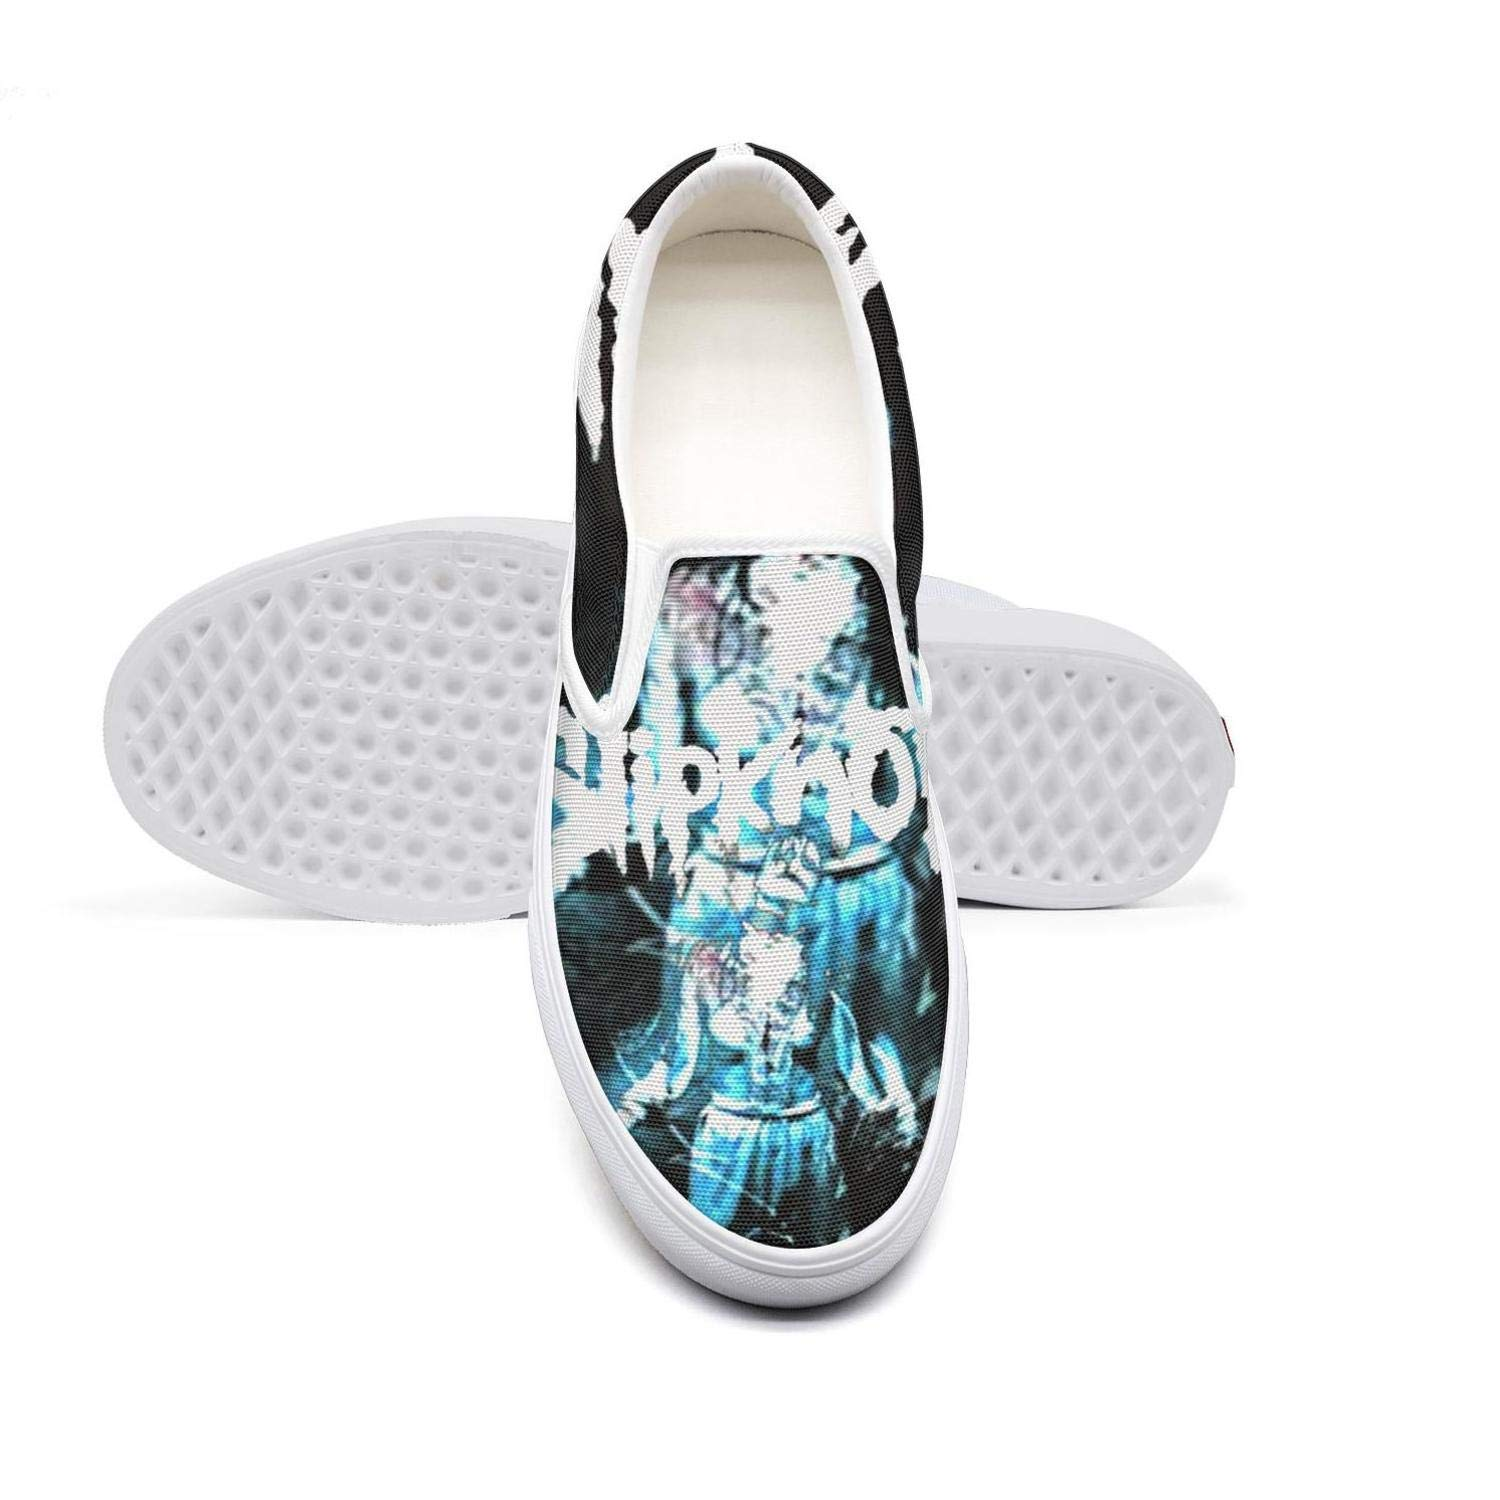 NI kingss Boys Slip ons Retro Casual Shoes Sneakers Print Boat Sneakers